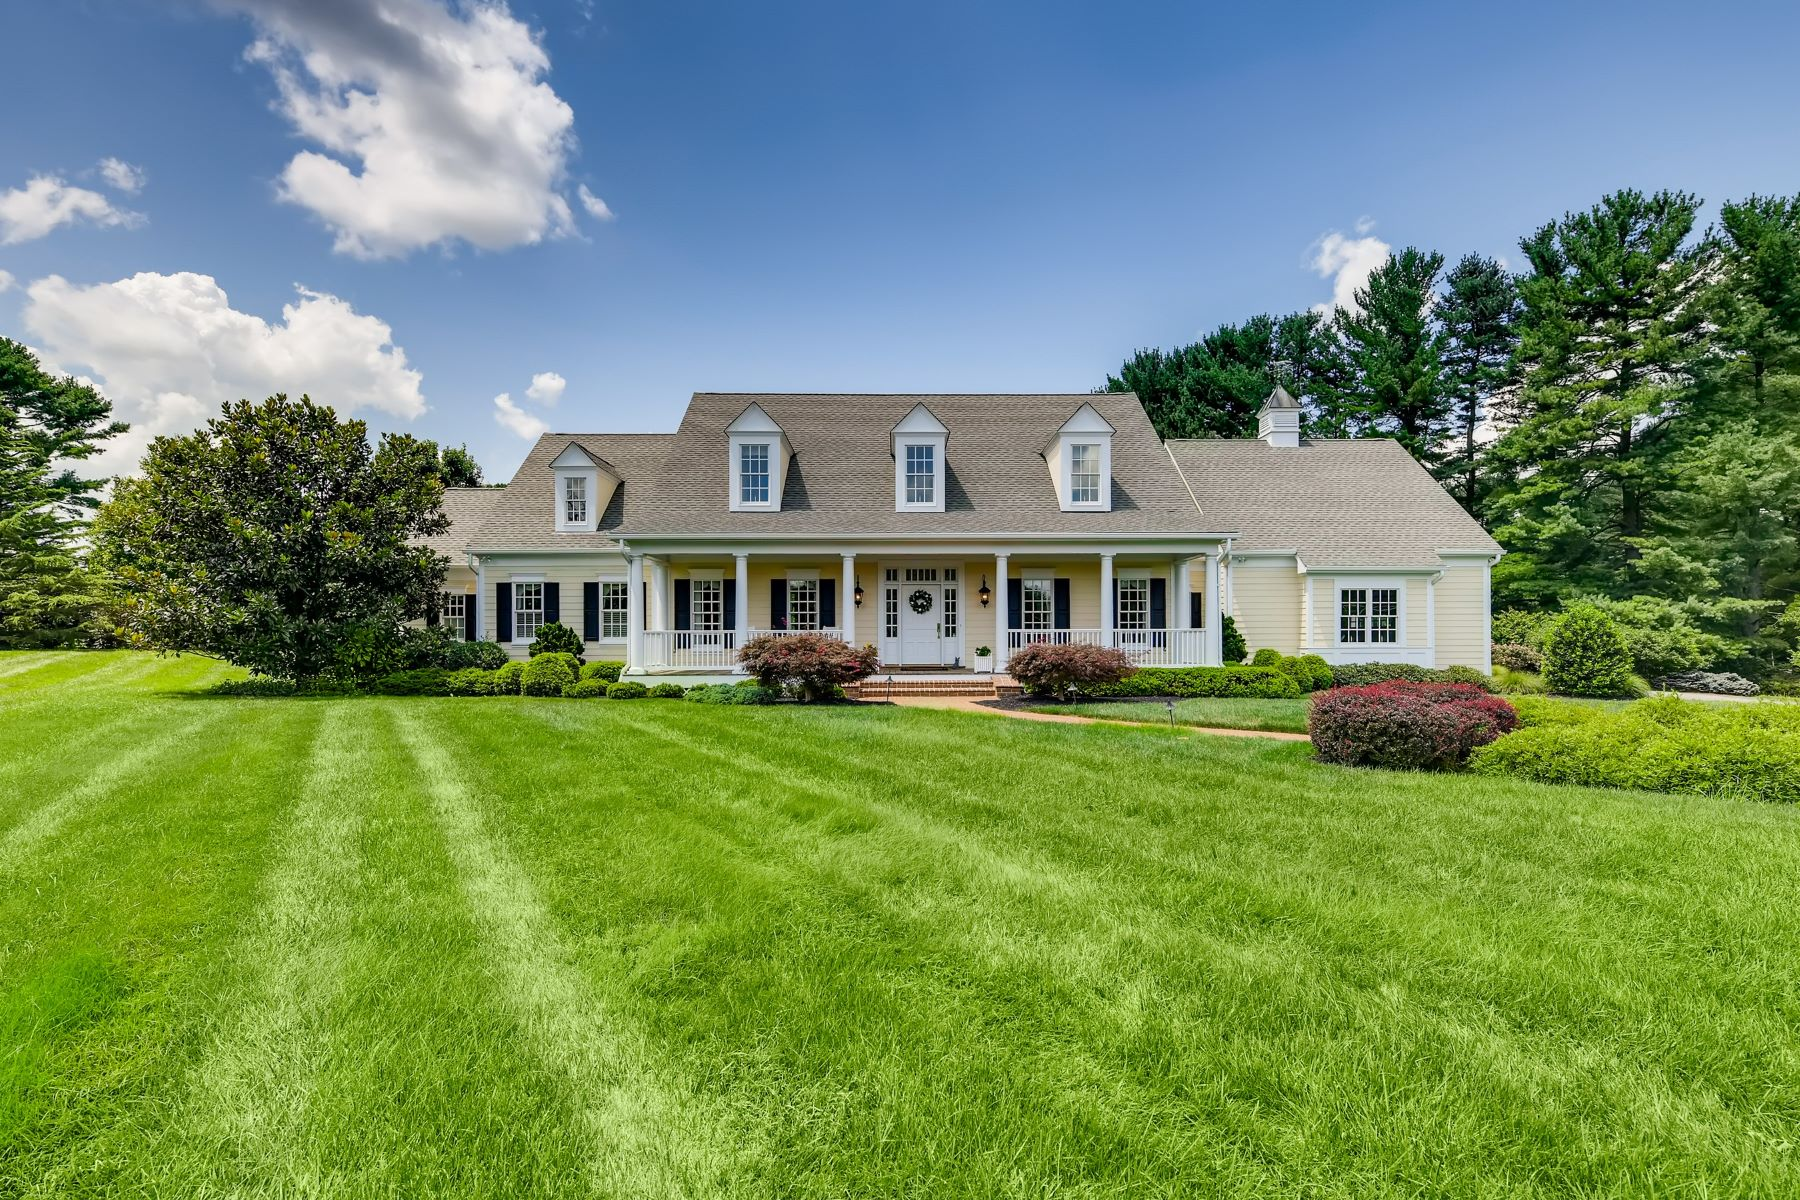 Single Family Homes for Sale at Falls Road Corridor 11800 Meylston Drive Lutherville Timonium, Maryland 21093 United States